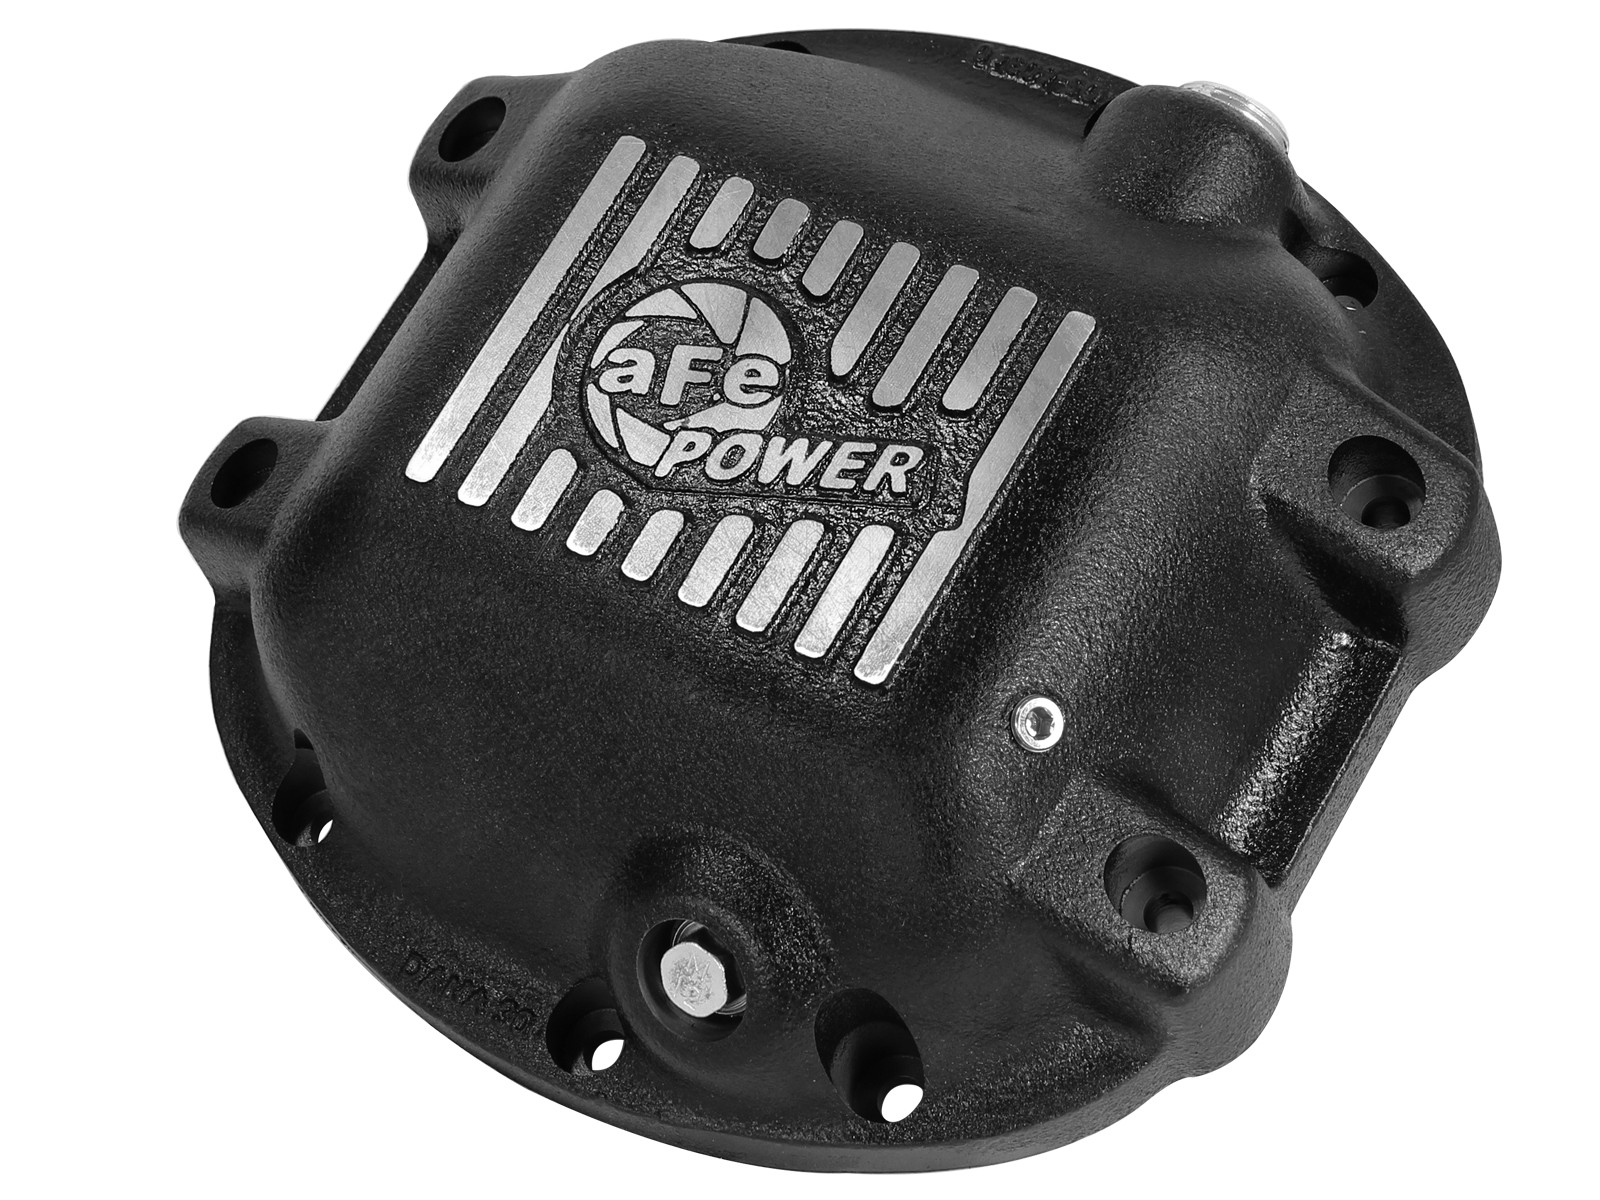 aFe POWER 46-70192 Differential Cover, Machined Fins